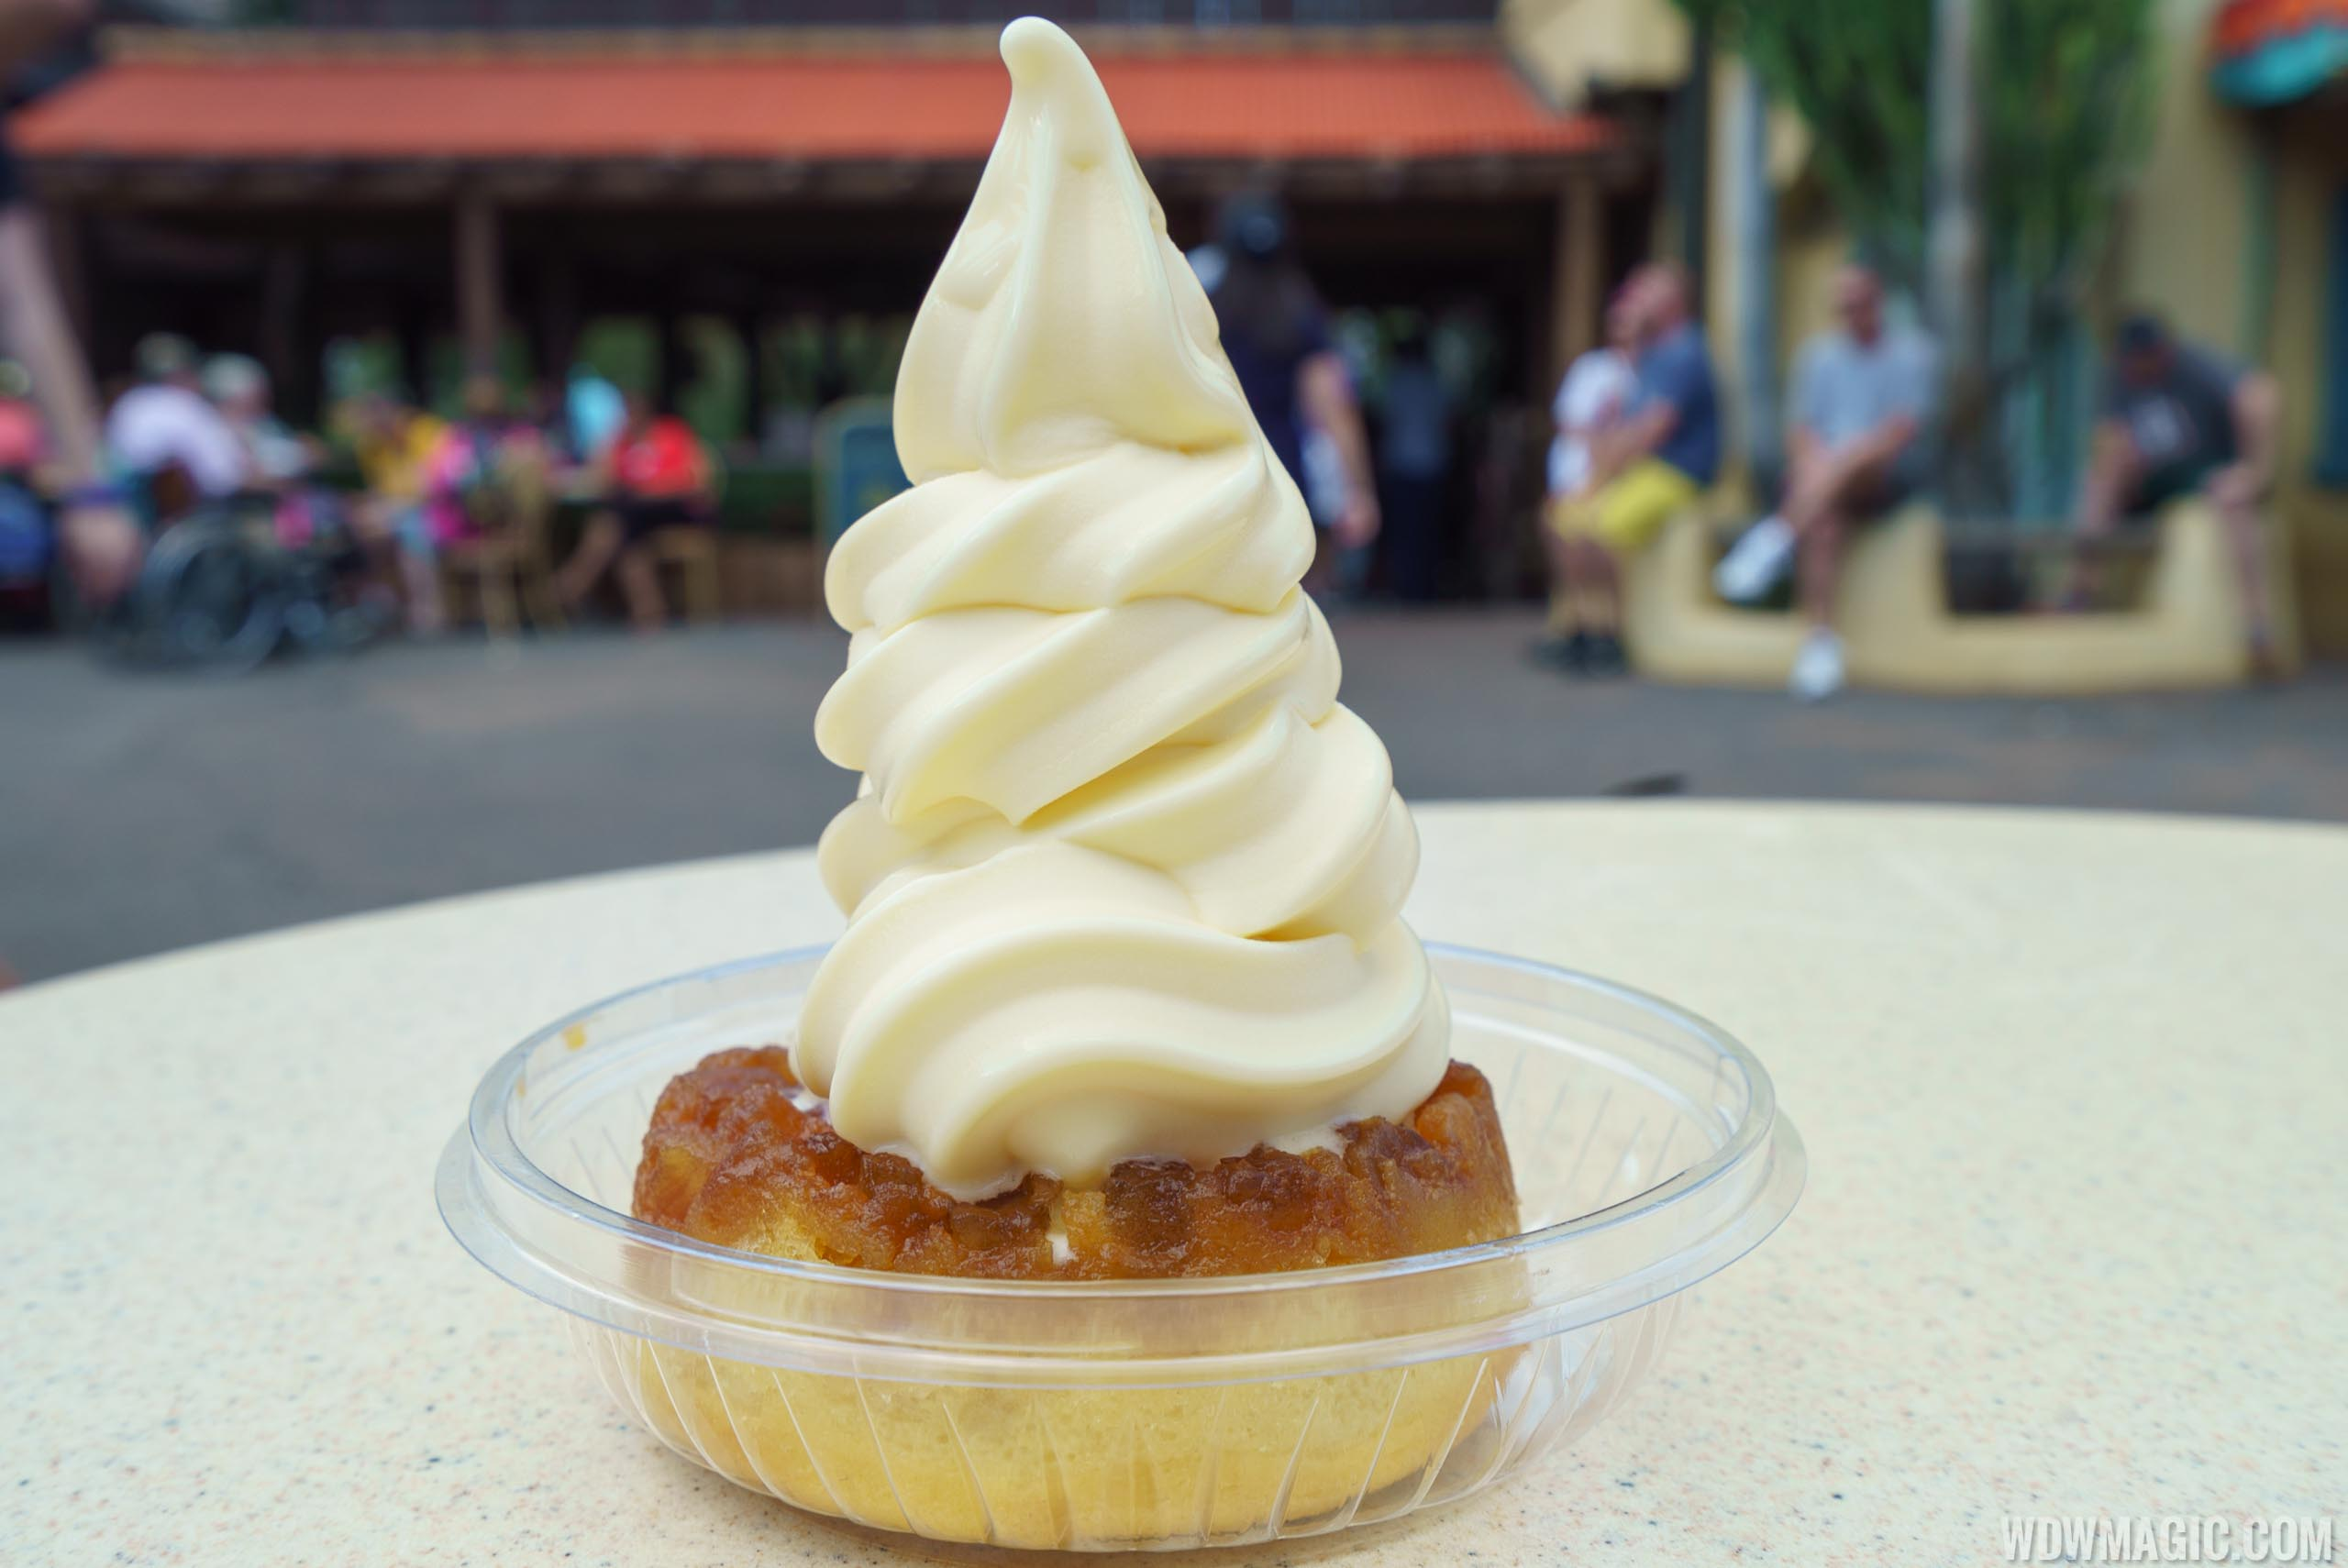 Dole Whip Pineapple Upside Down Cake